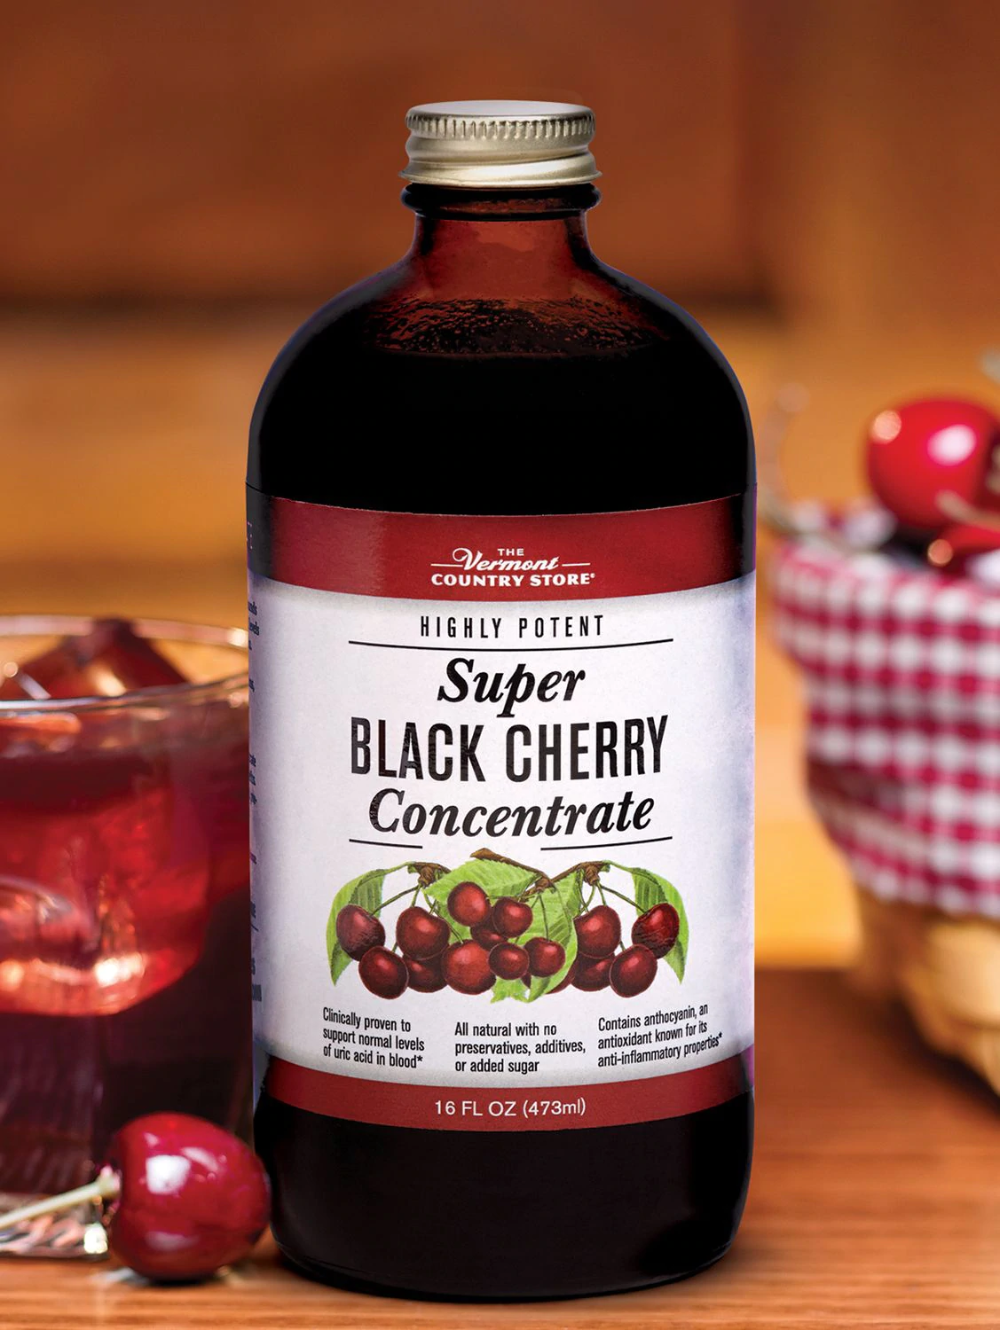 Black Cherry Juice Concentrate Relief For Arthritis And Gout In 2020 Black Cherry Juice Cherry Juice For Gout Cherry Juice